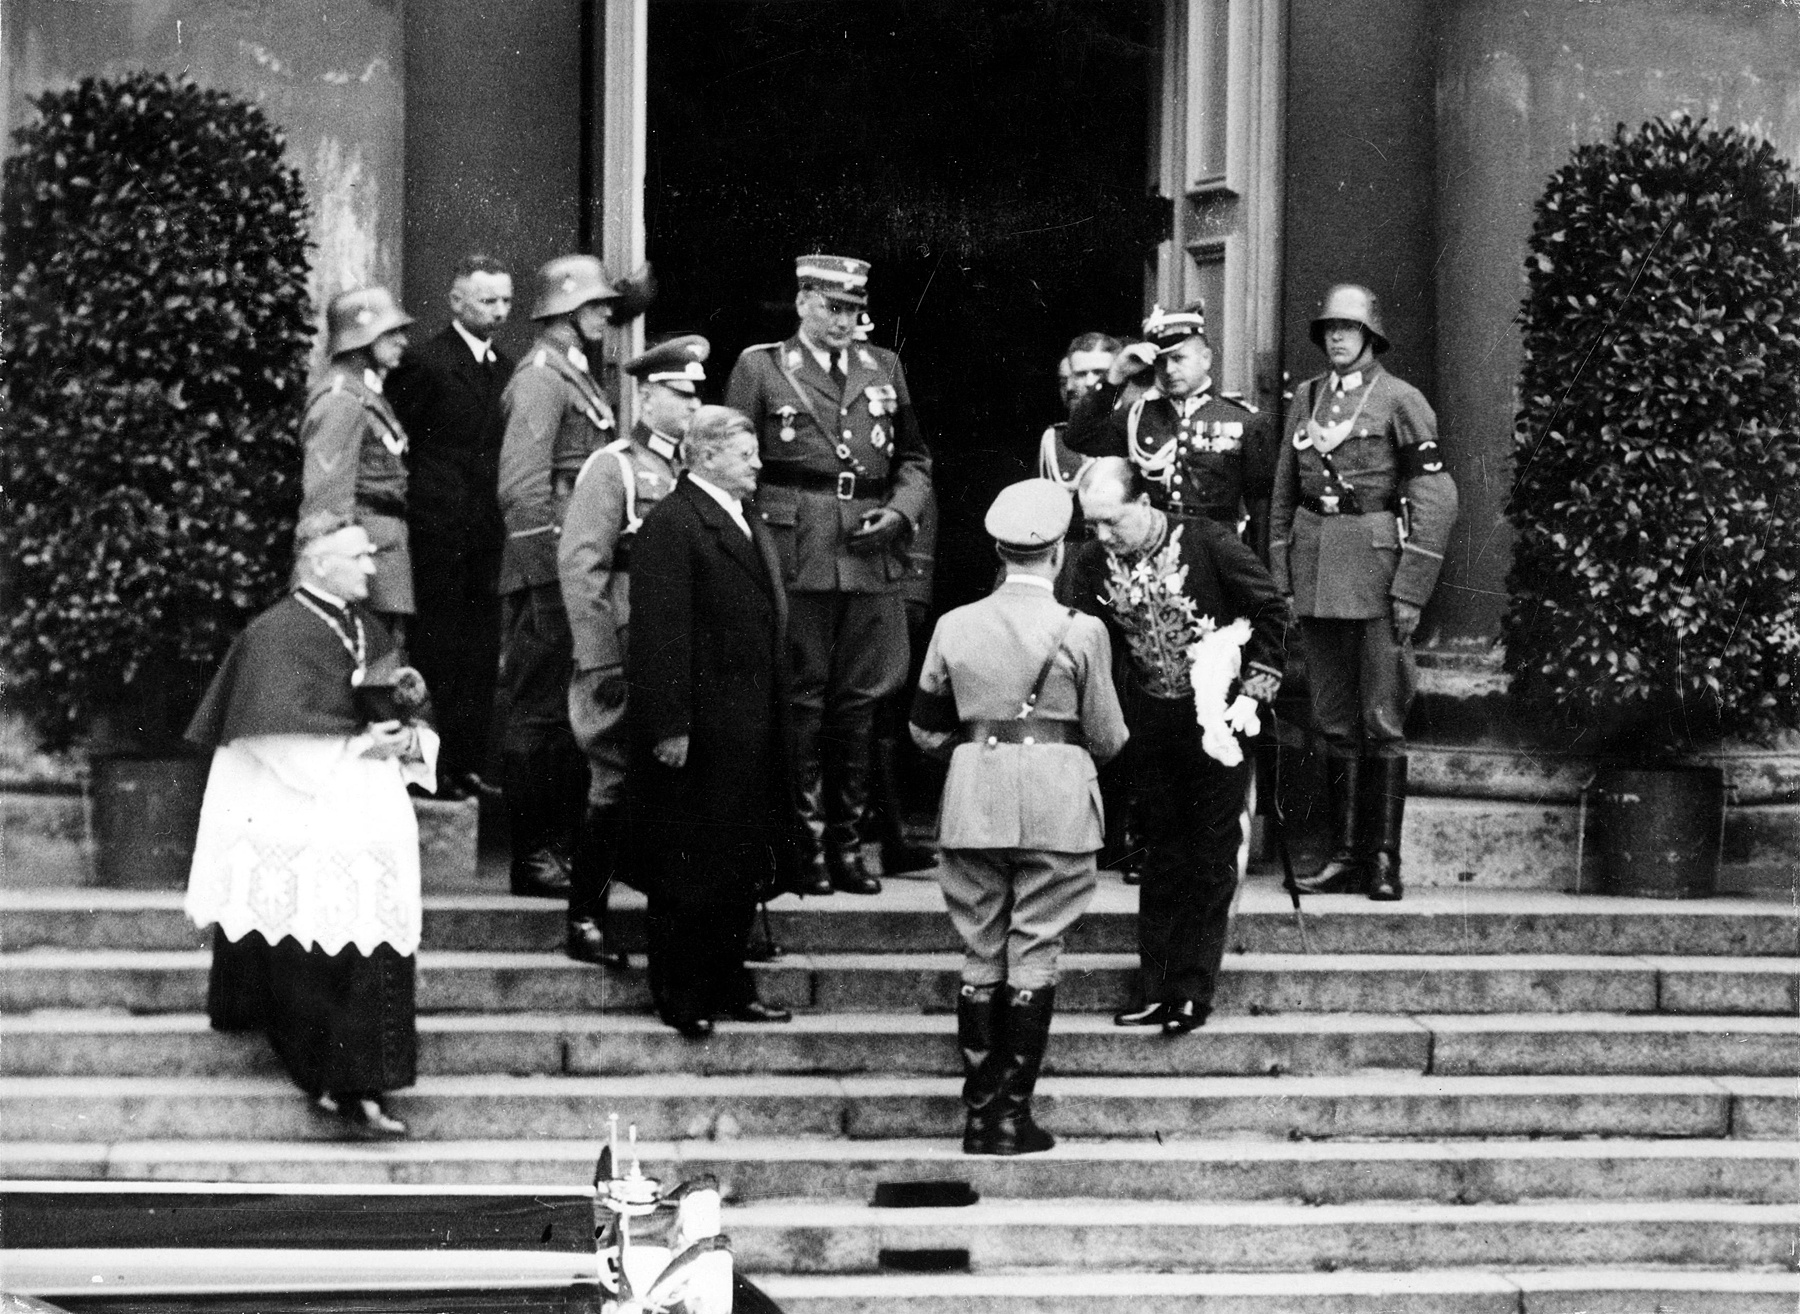 Adolf Hitler arrives at St. Hedwig's Cathedral in Berlin for the memorial service for Polish First Marshal Jozef Pilsudski